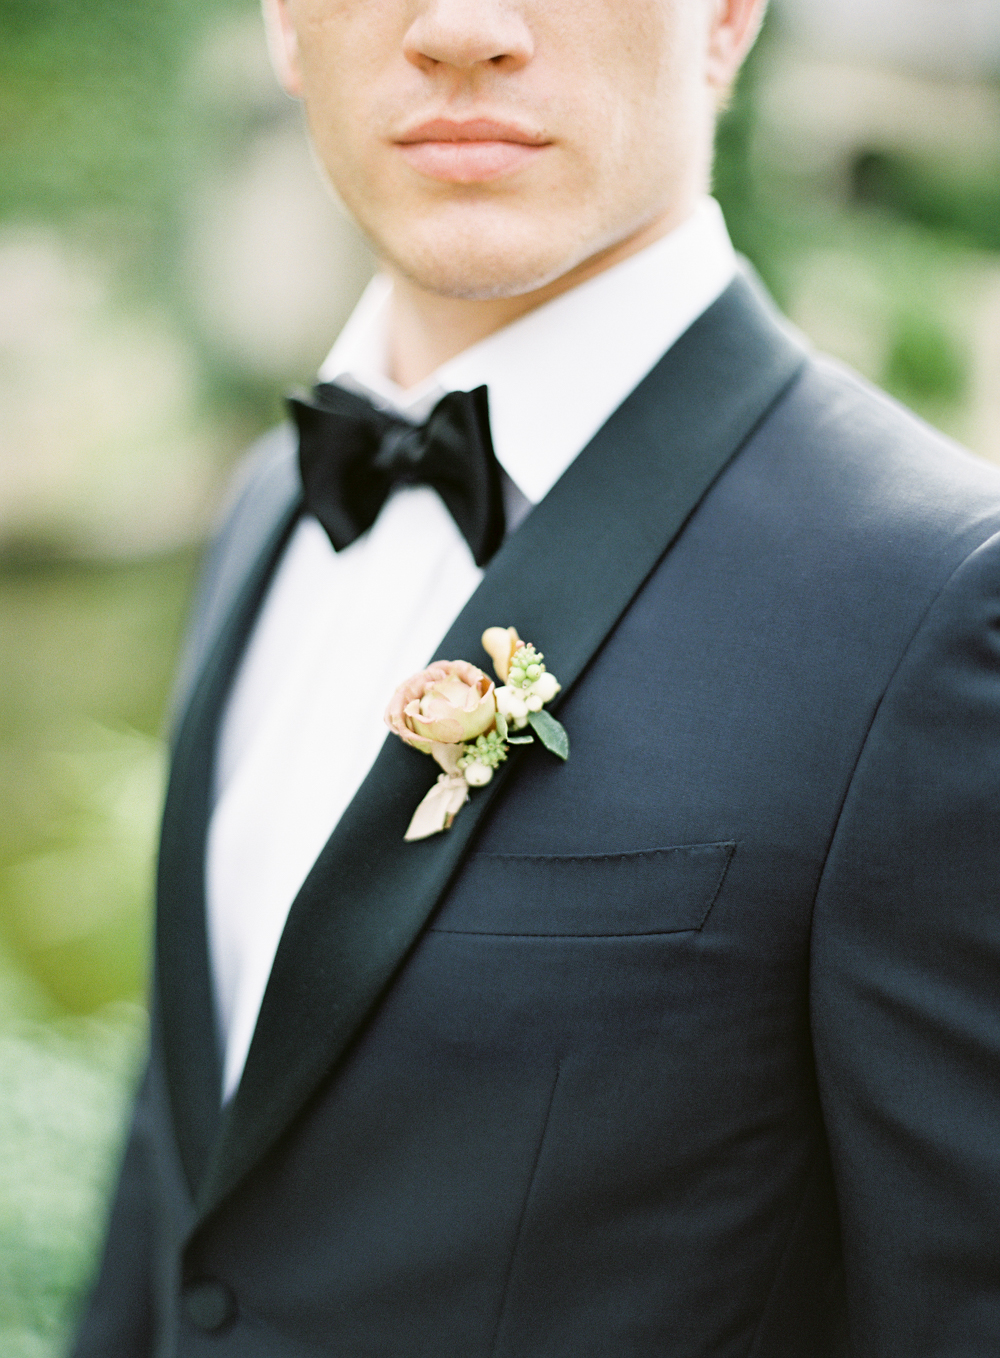 Luxury groom tux | Canali | Boutonniere by Plenty of Petals | Hidden Castle | Rancho Santa Fe | Estate Events with Venuelust | neutral wedding | European Wedding Inspiration | French wedding | France wedding photographer | Southern California film photographer | San Diego wedding photographer | Whiskers and Willow Photography